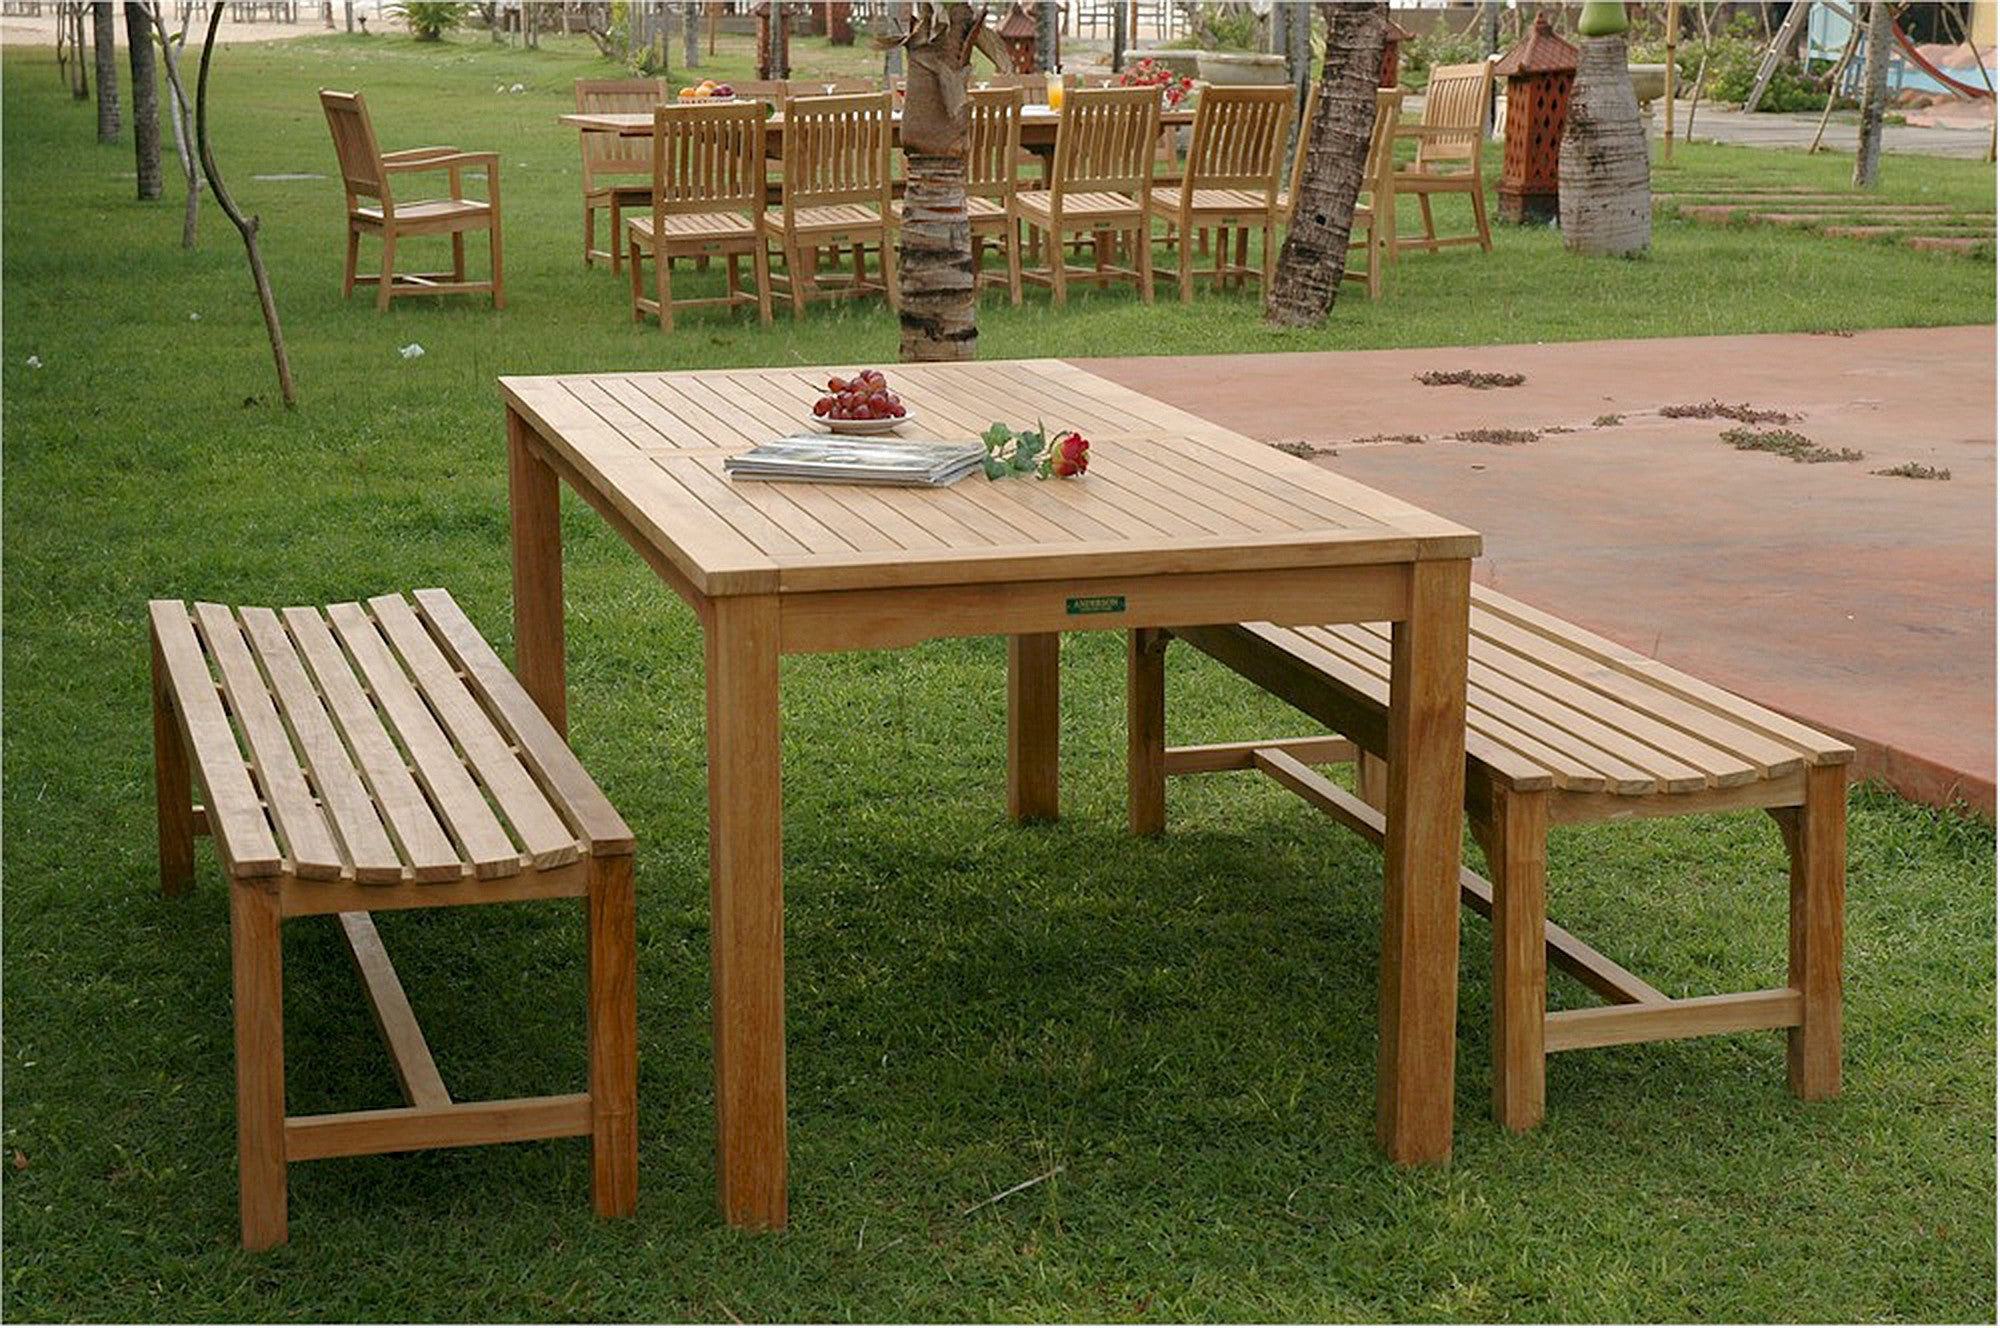 *Anderson Teak | Bahama Rectangular Table/Hampton Bench Dining Set |SET 31